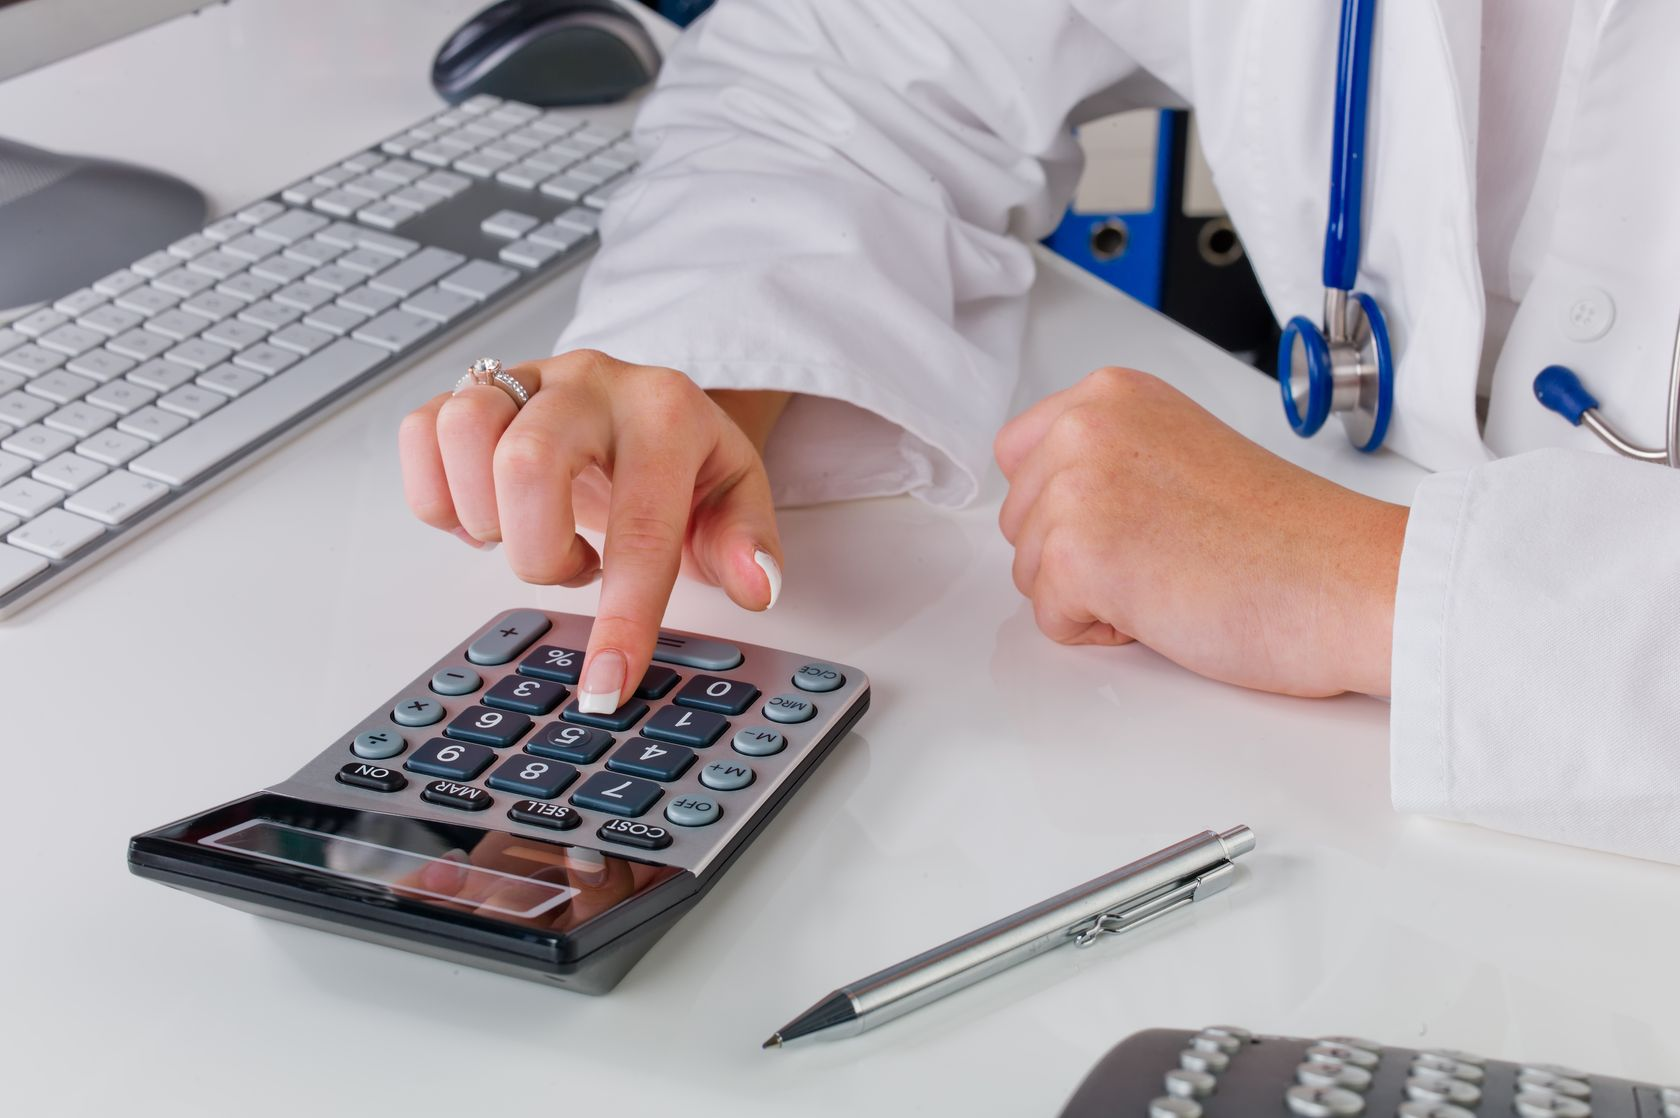 Medical Device Tax Renews January 1, 2018: Are you ERP ready?